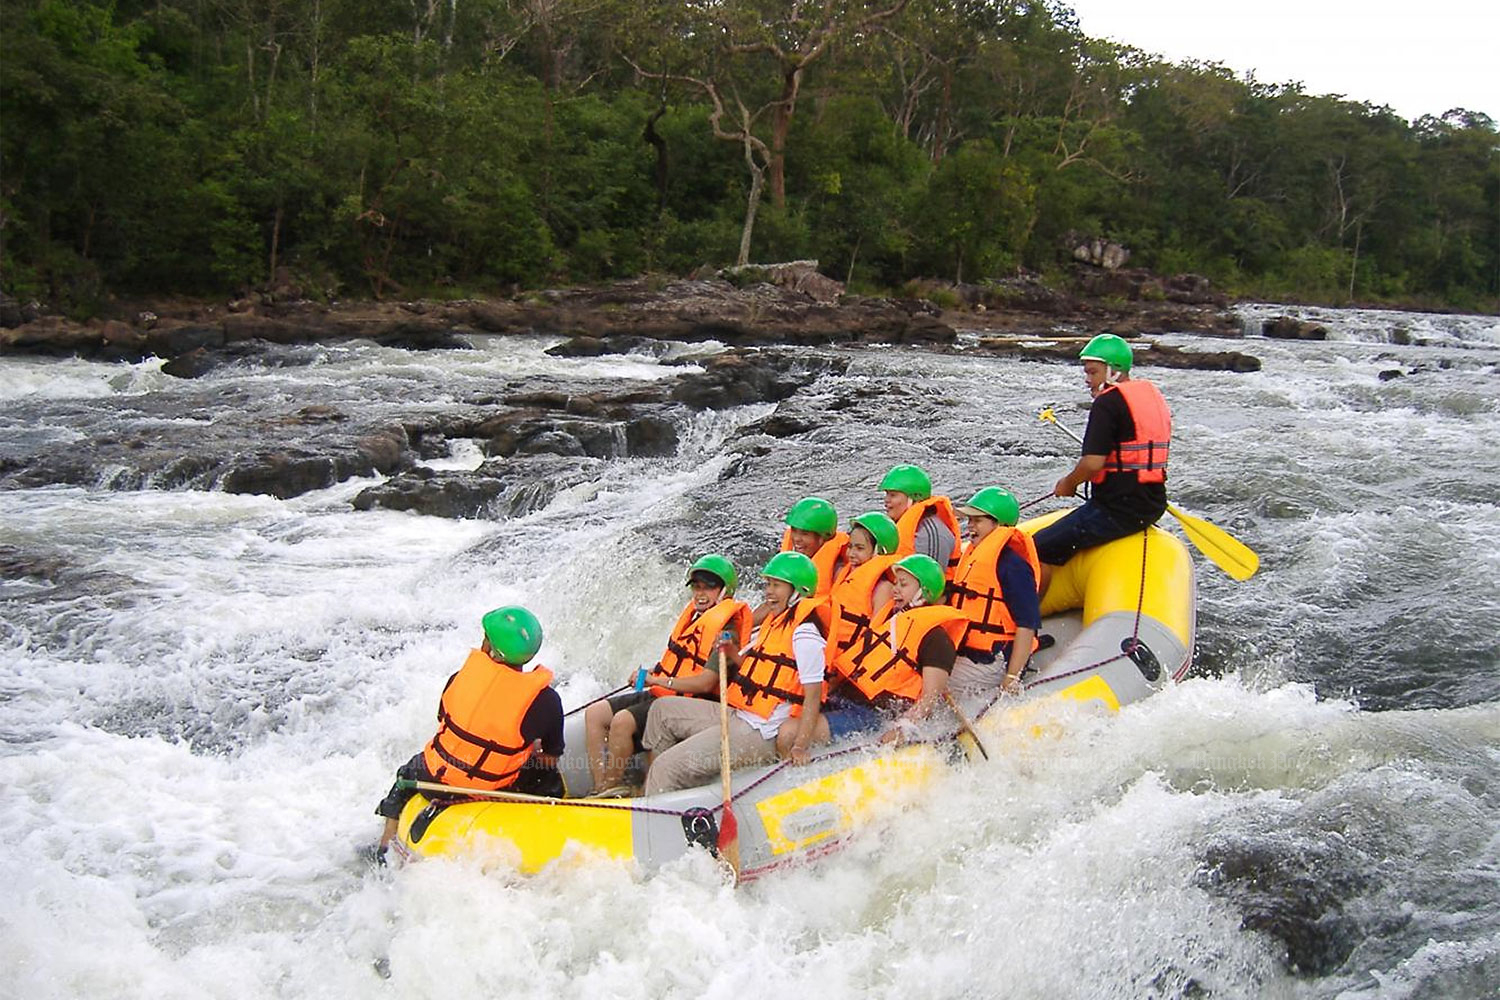 Whitewater rafting in Kaeng Hin Phoeng River in Prachin Buri province. Corporate travel is the new target for the tourism stimulus campaign after individuals were slow to react in the first month.